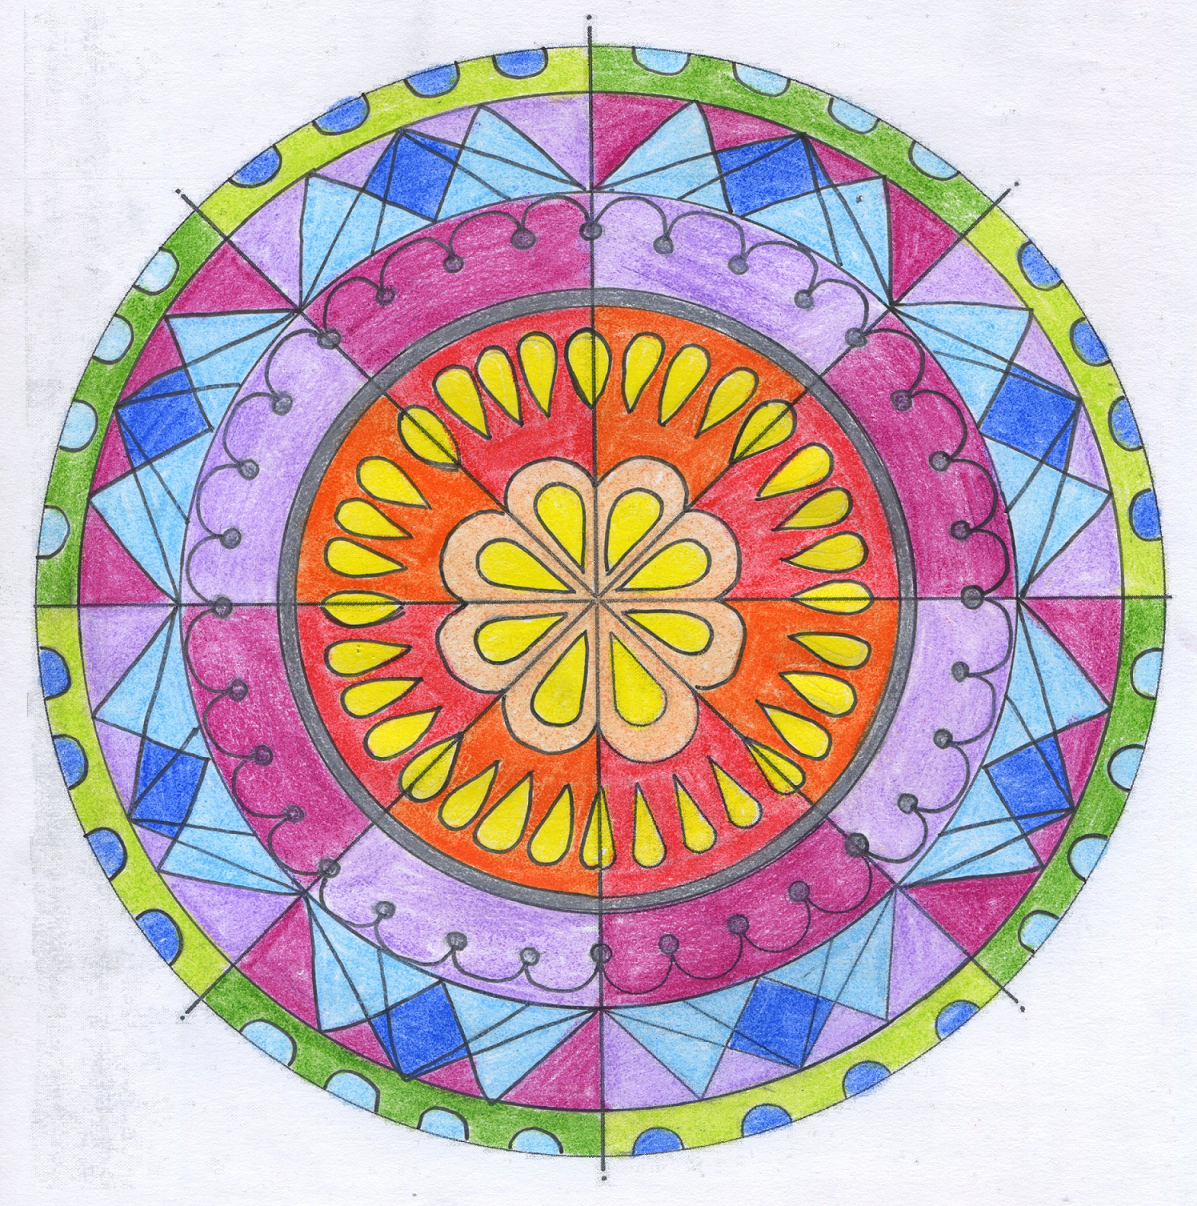 Visual Arts Working With Radial Symmetry